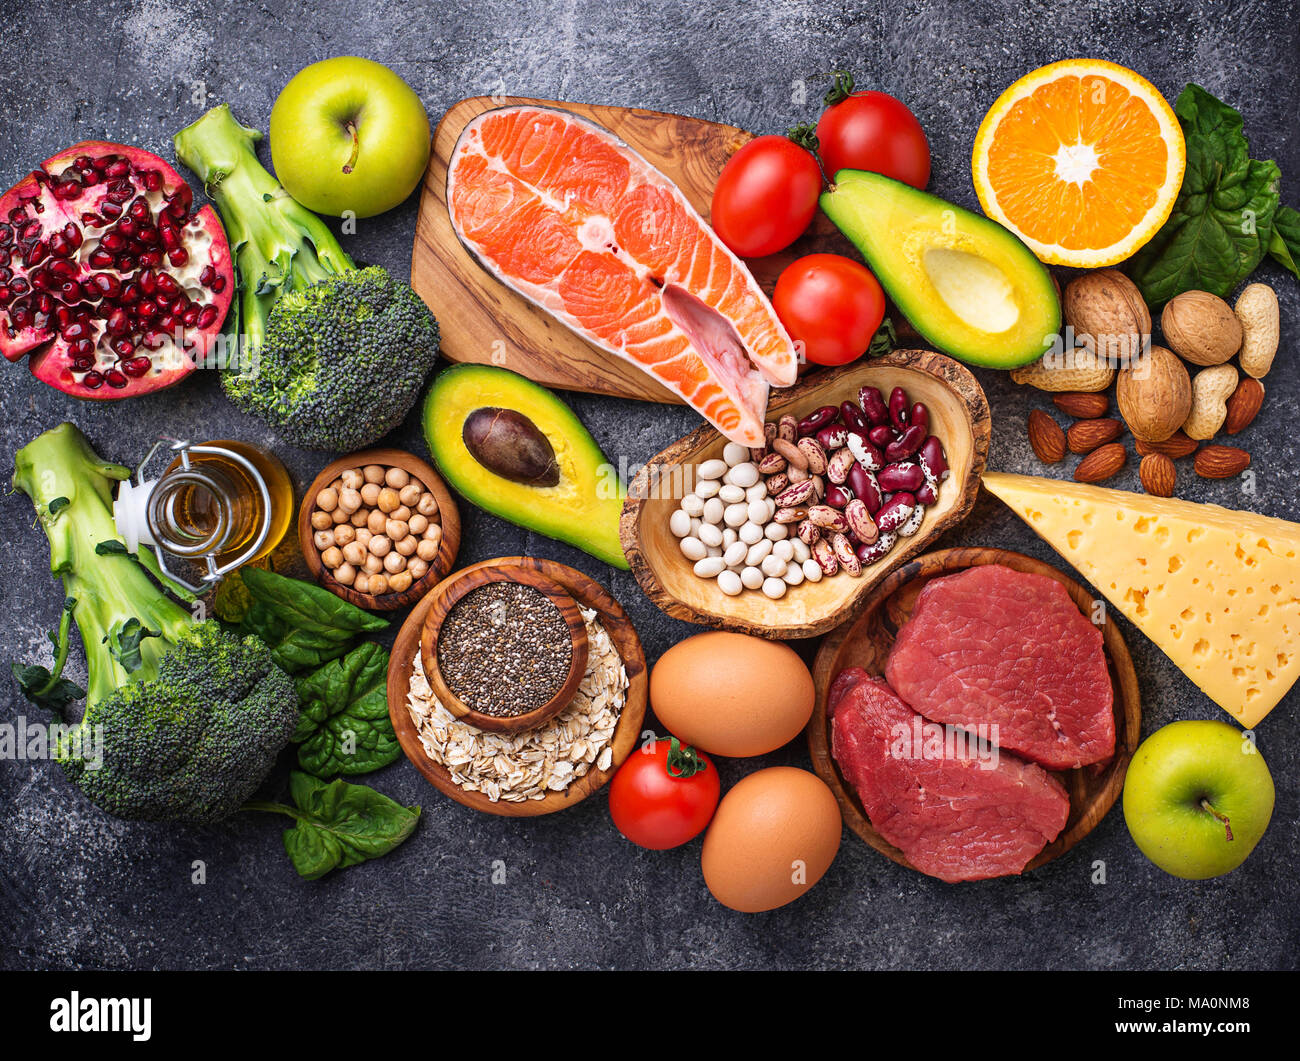 Organic food for healthy nutrition and superfoods. Balanced diet. Top view - Stock Image